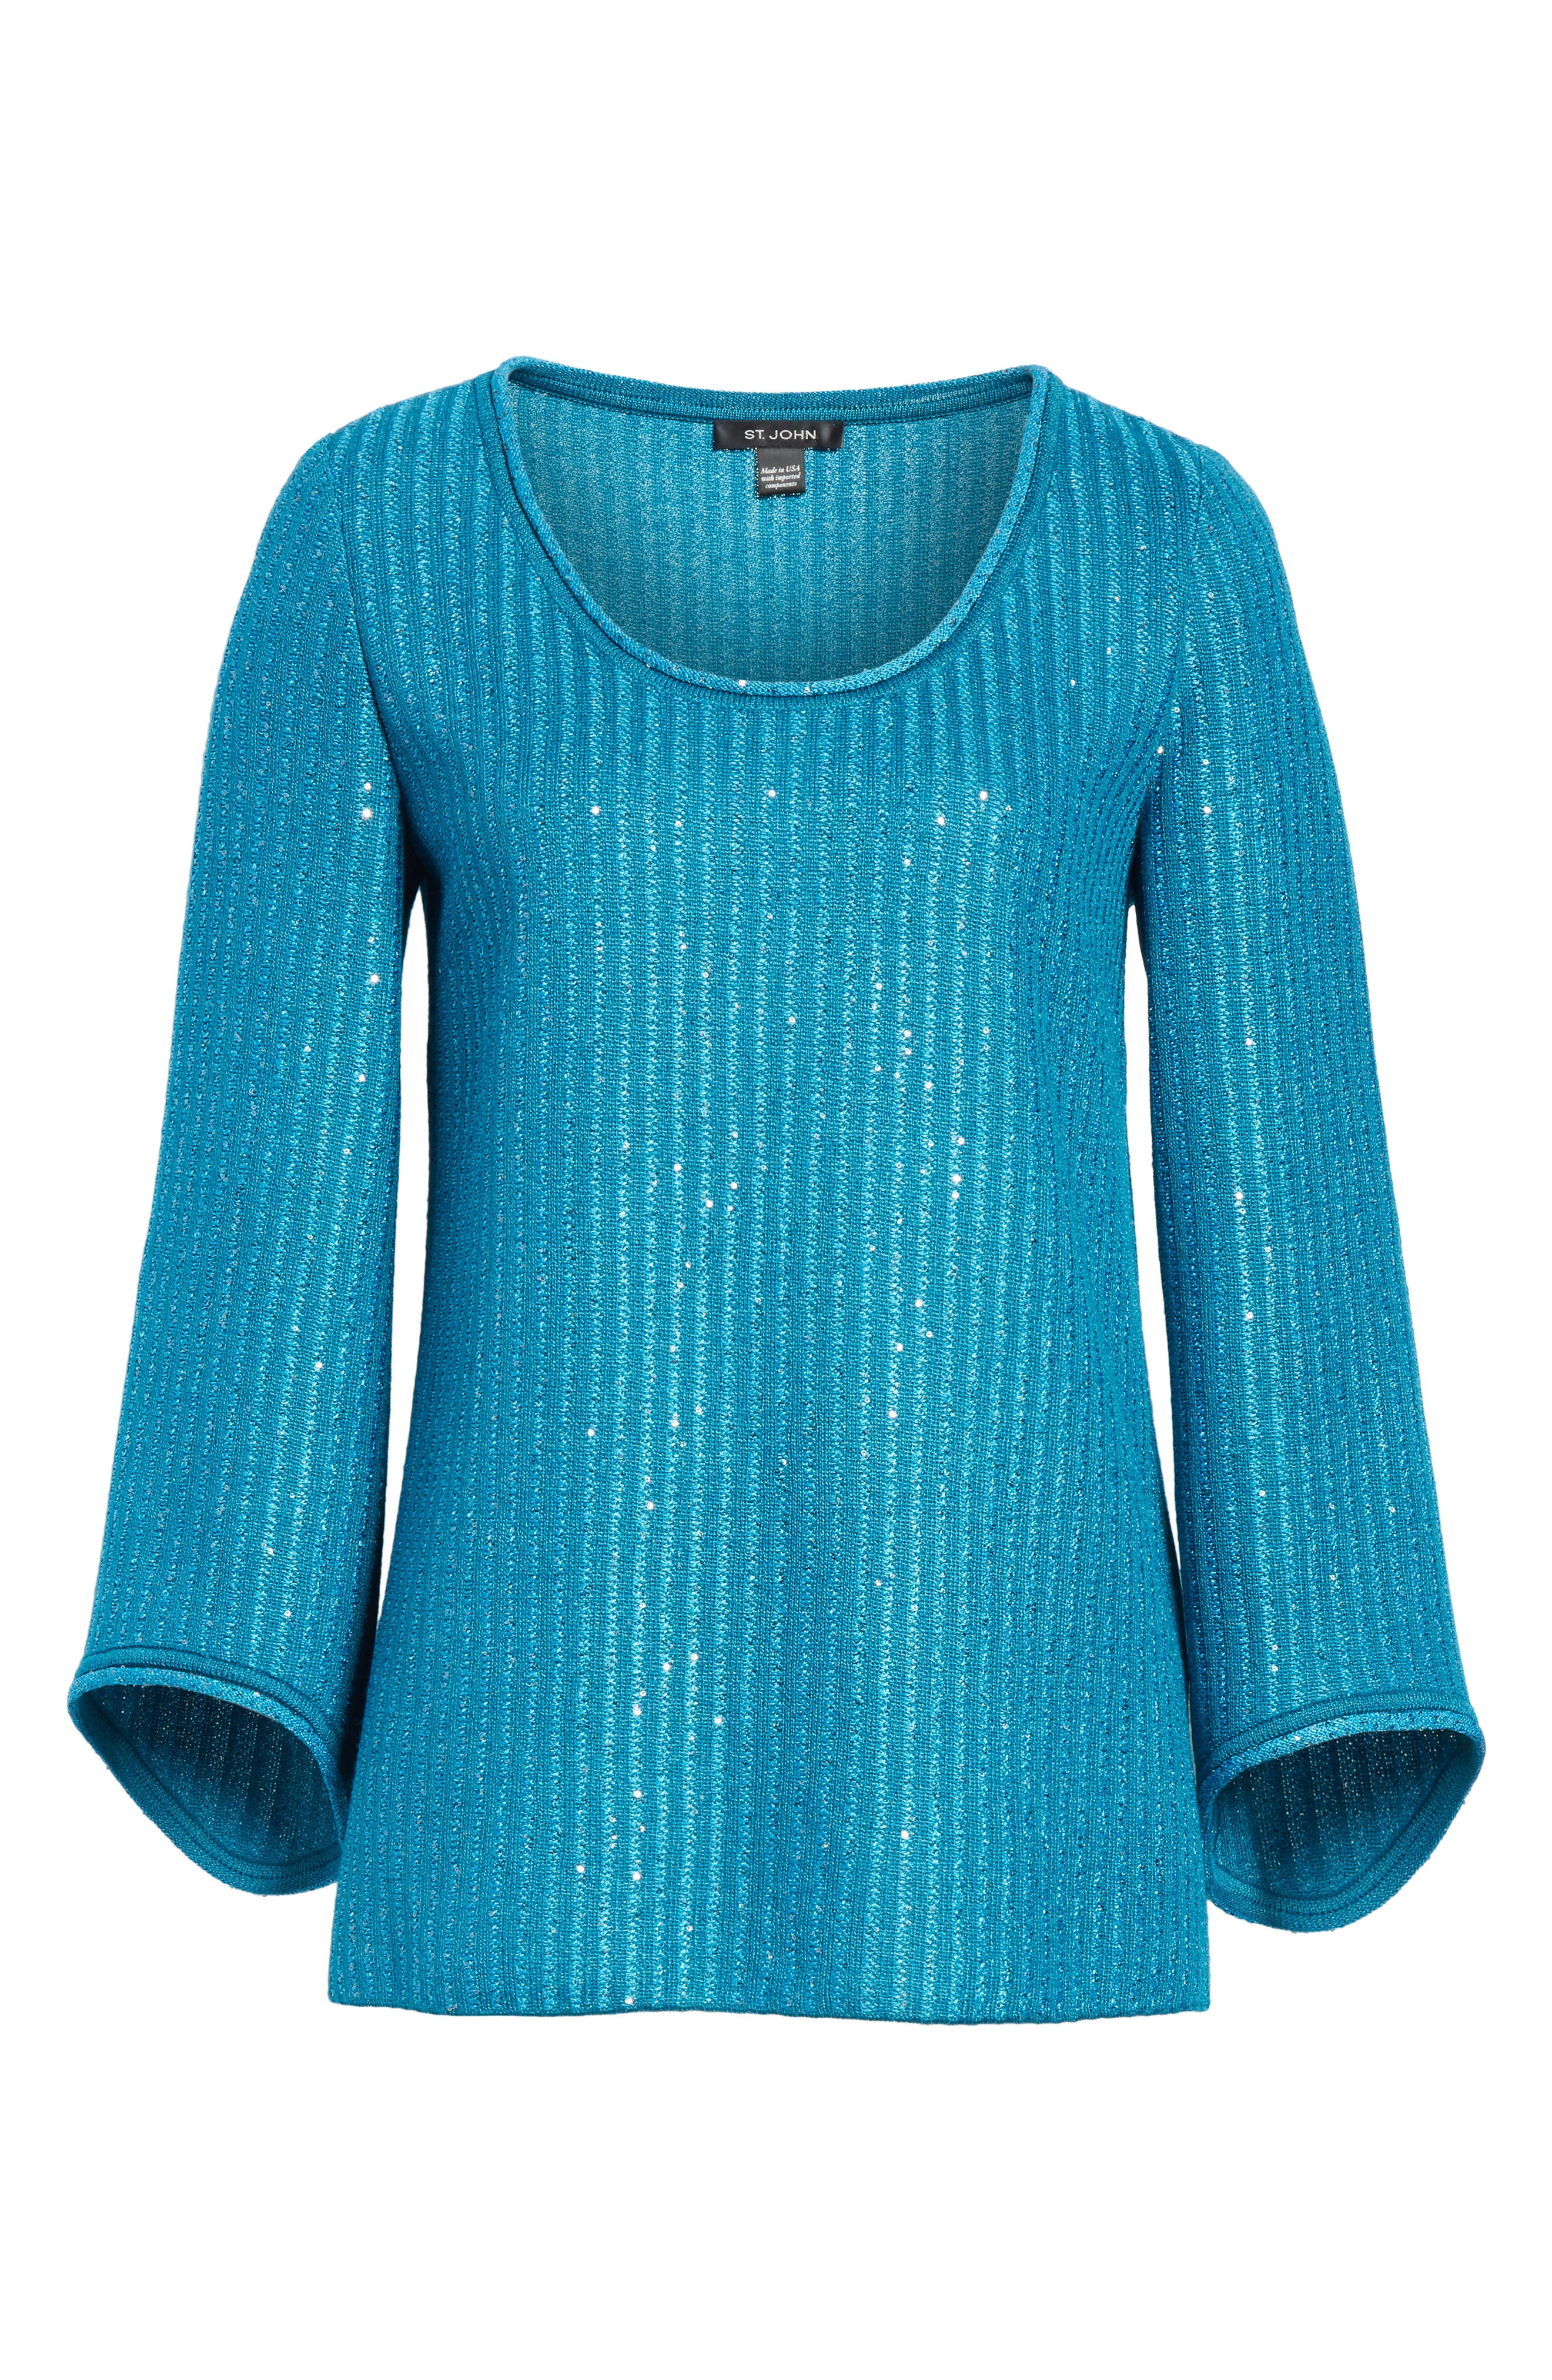 Sequin Rib Knit Sweater,                             Alternate thumbnail 6, color,                             400